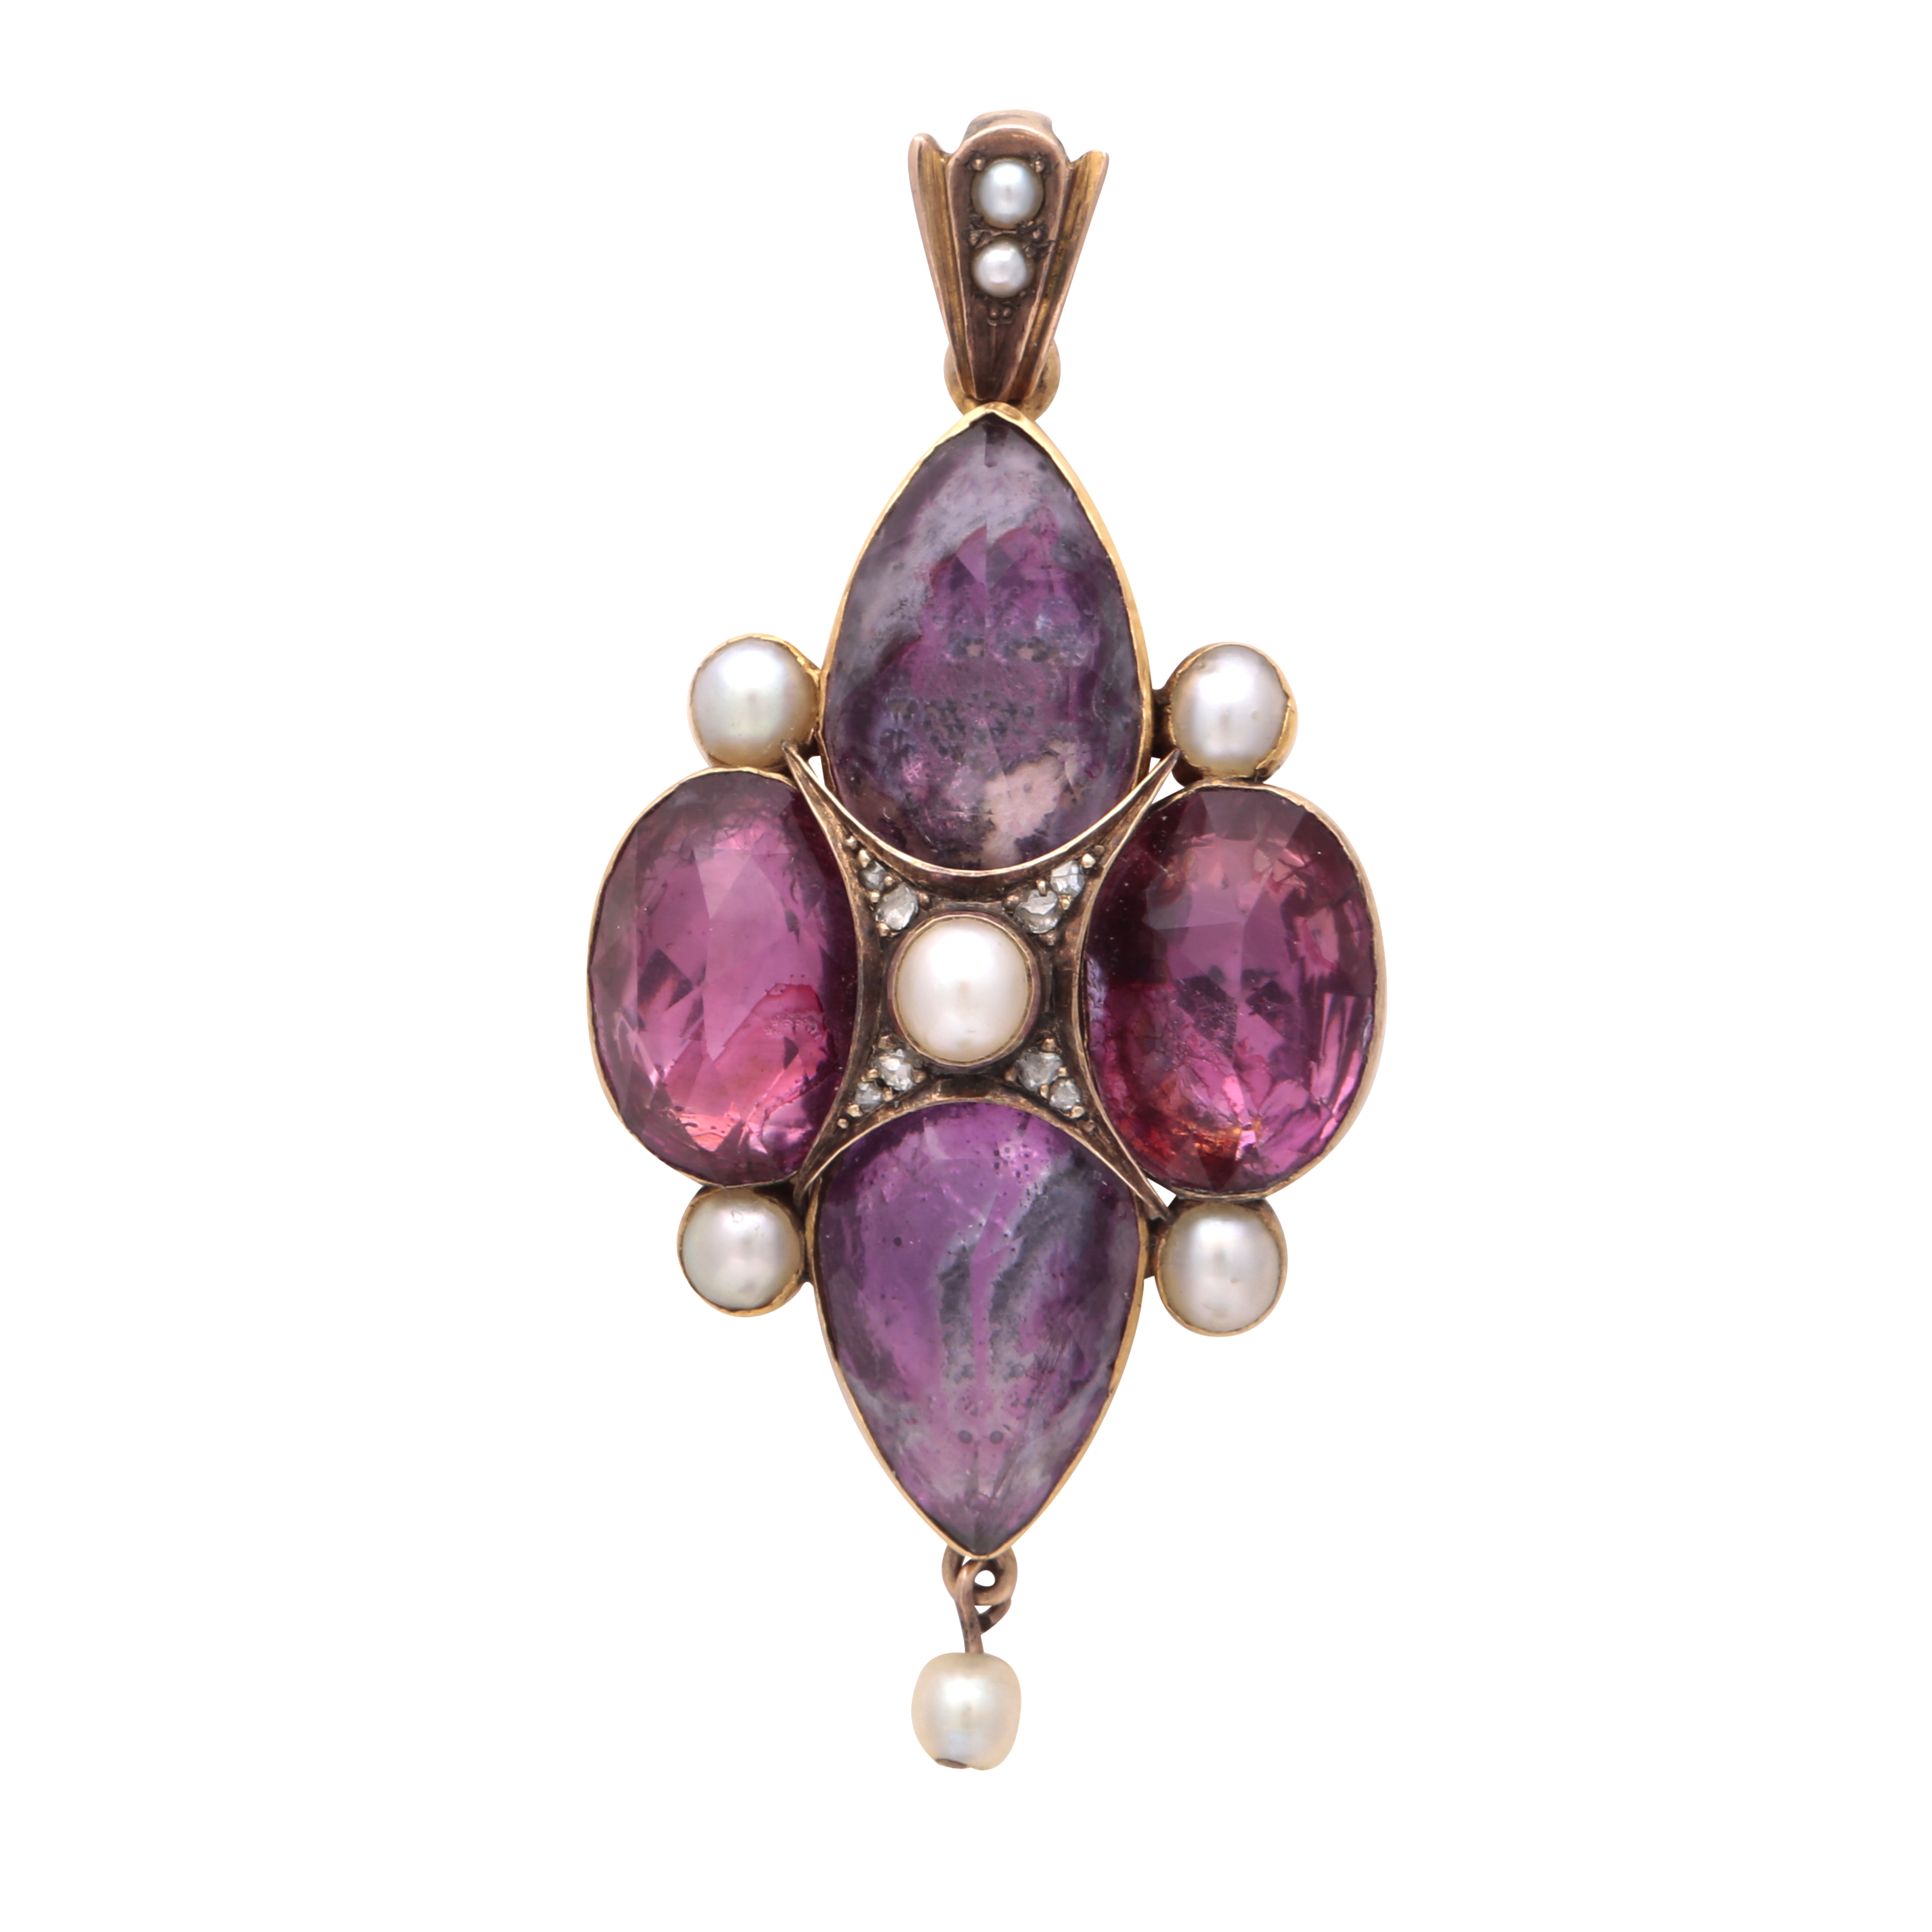 Los 188 - An antique Georgian pink tourmaline / topaz, pearl and diamond pendant set with four large variously